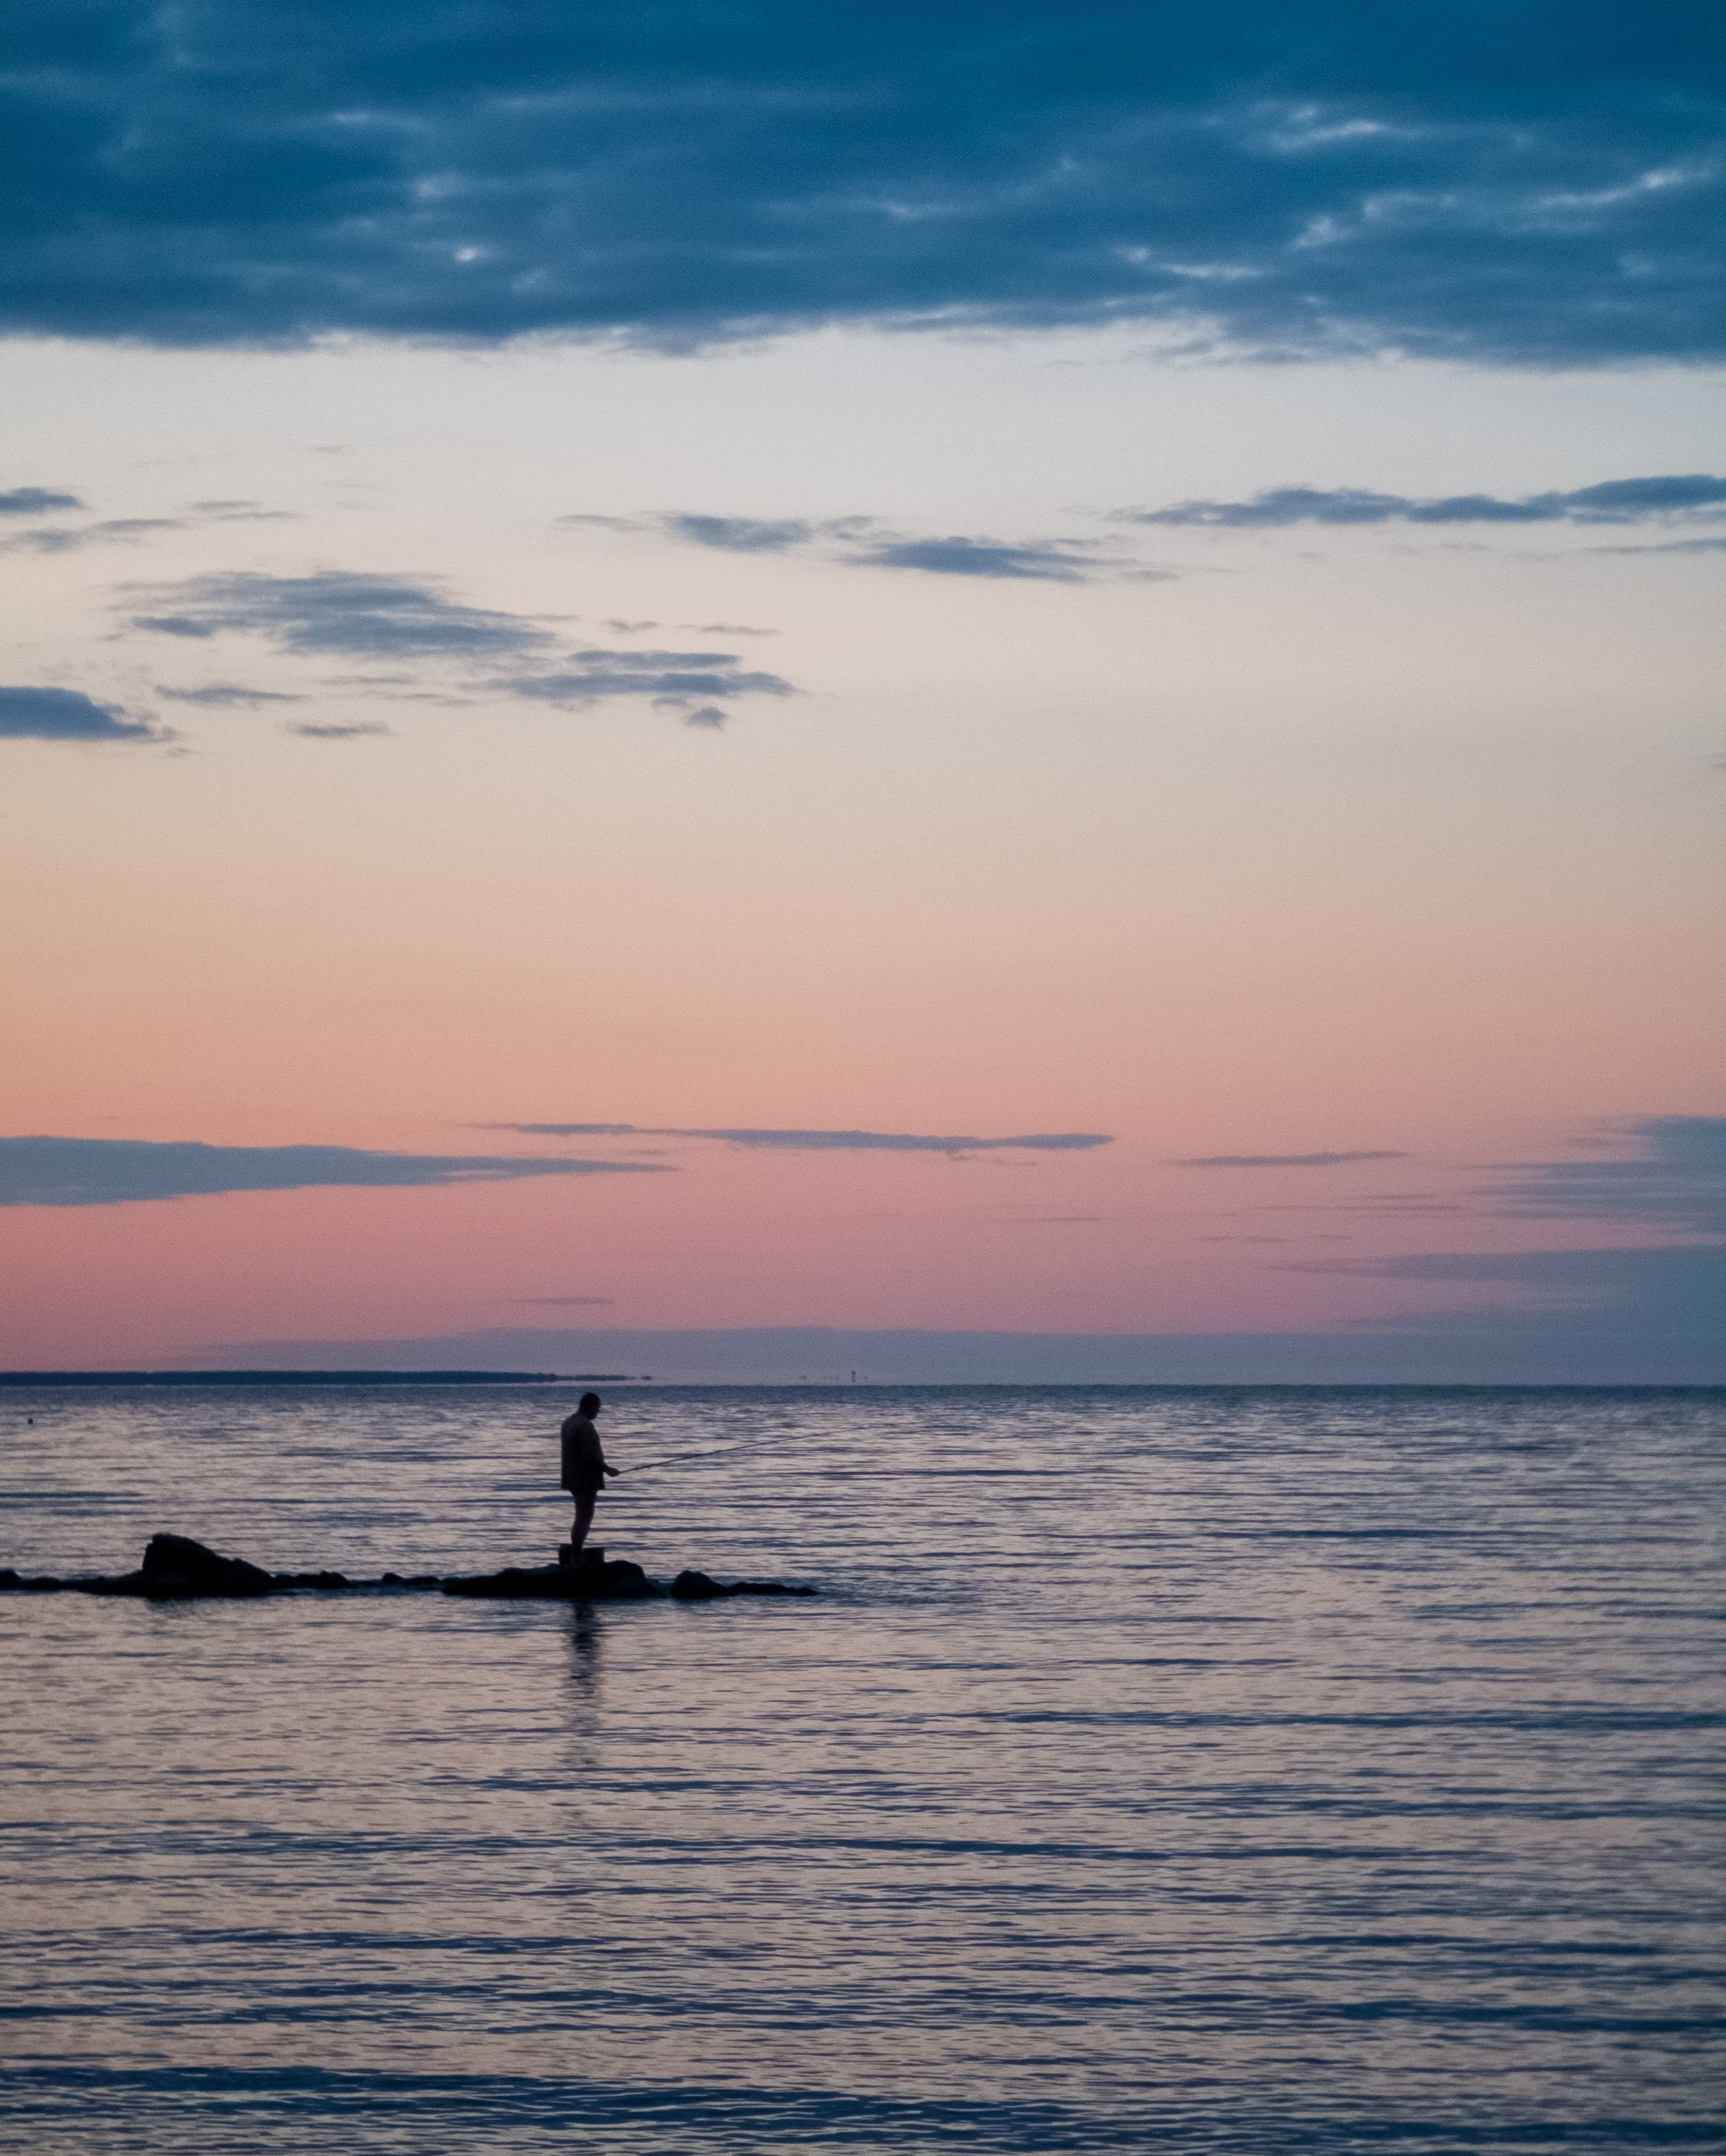 155800 download wallpaper Miscellanea, Miscellaneous, Loneliness, Alone, Lonely, Sea, Dusk, Twilight screensavers and pictures for free